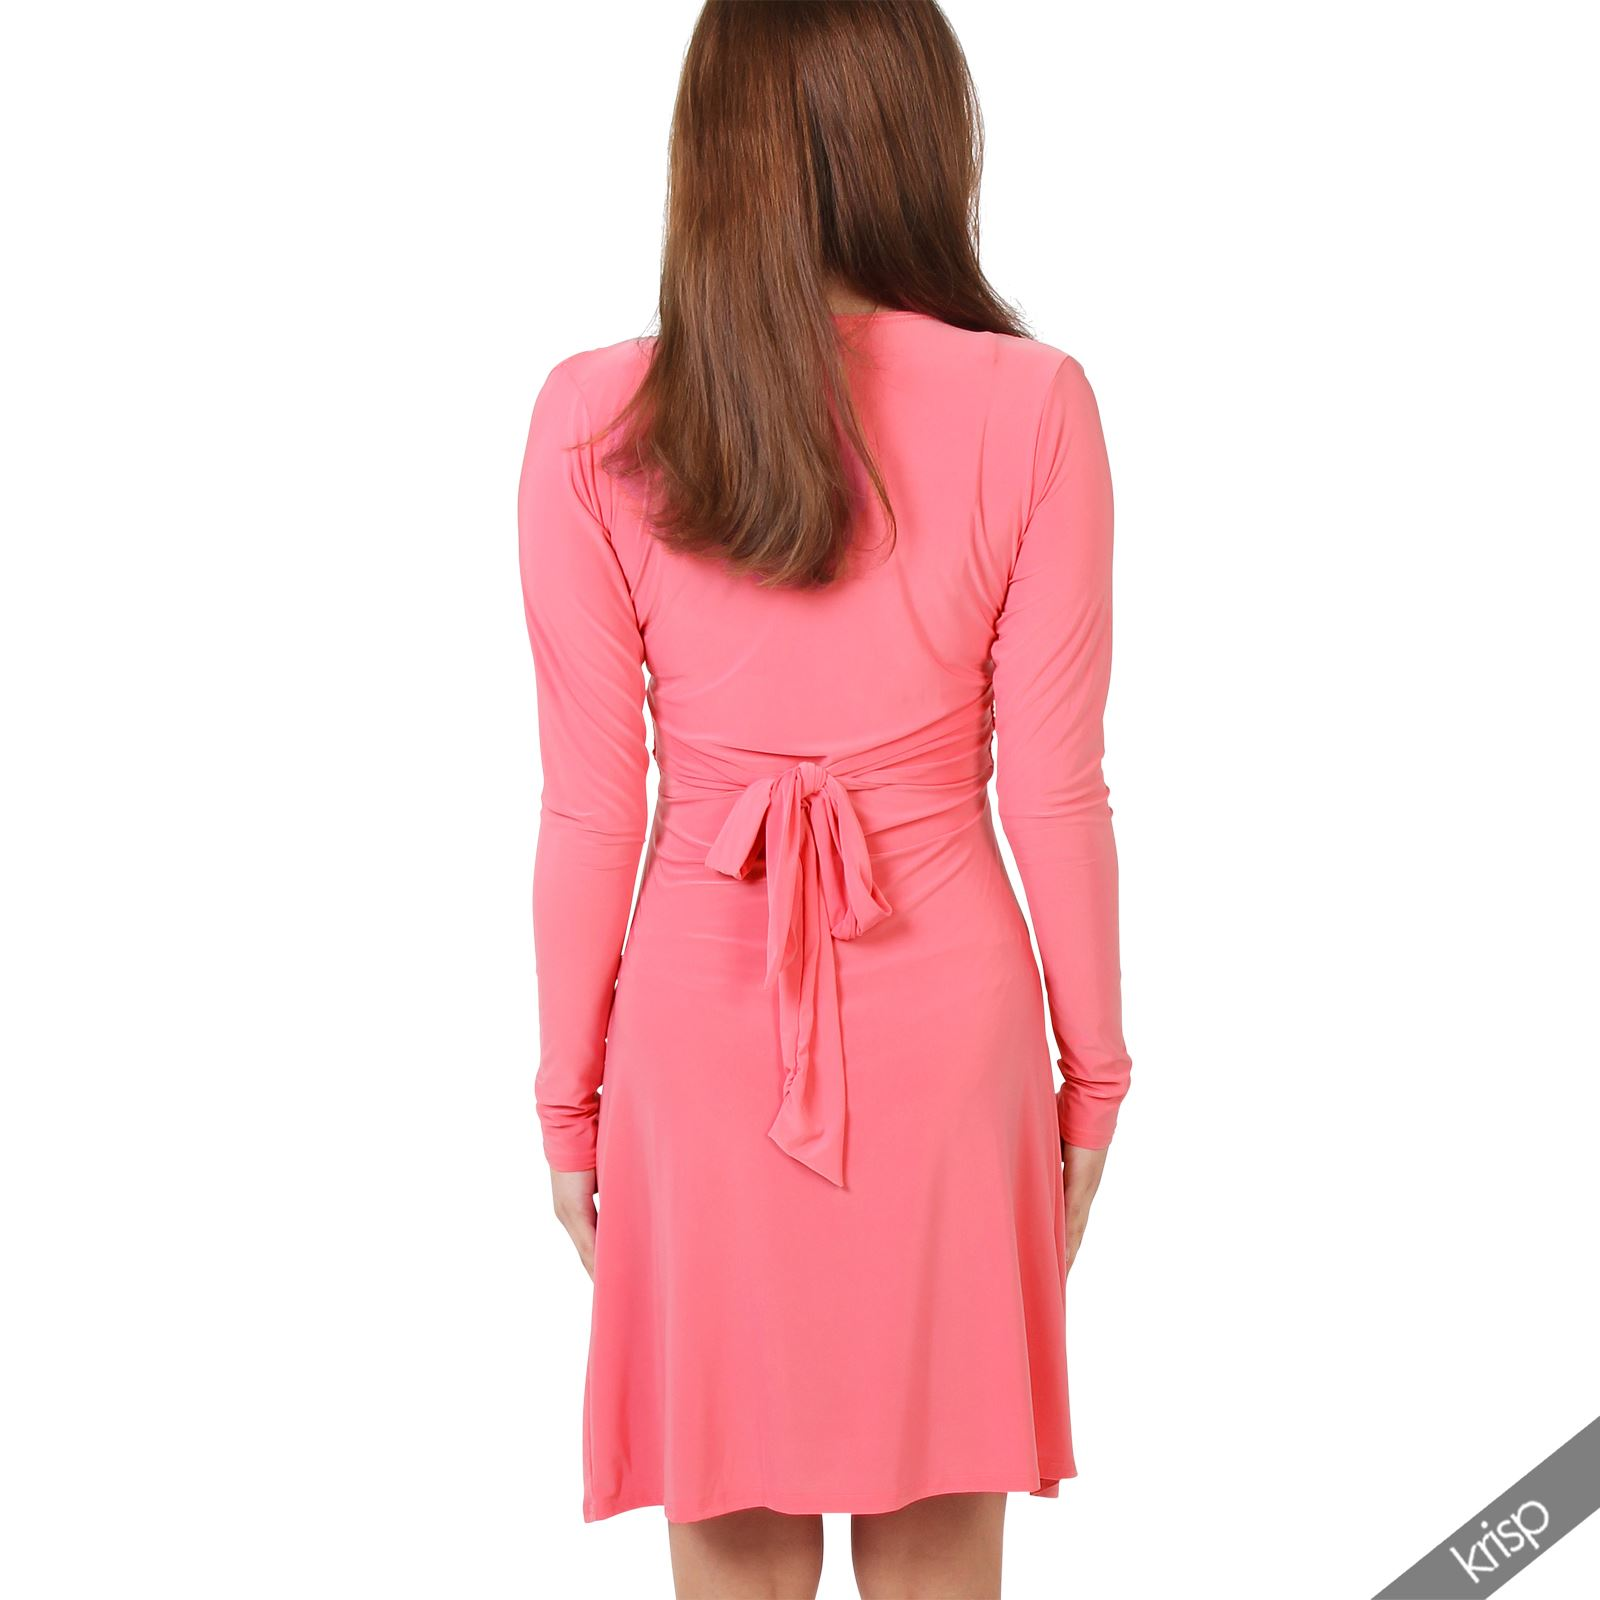 Womens-Ladies-V-Neck-Dress-Knee-Length-Mini-Ruched-Pleated-Swing-Top-Party thumbnail 33